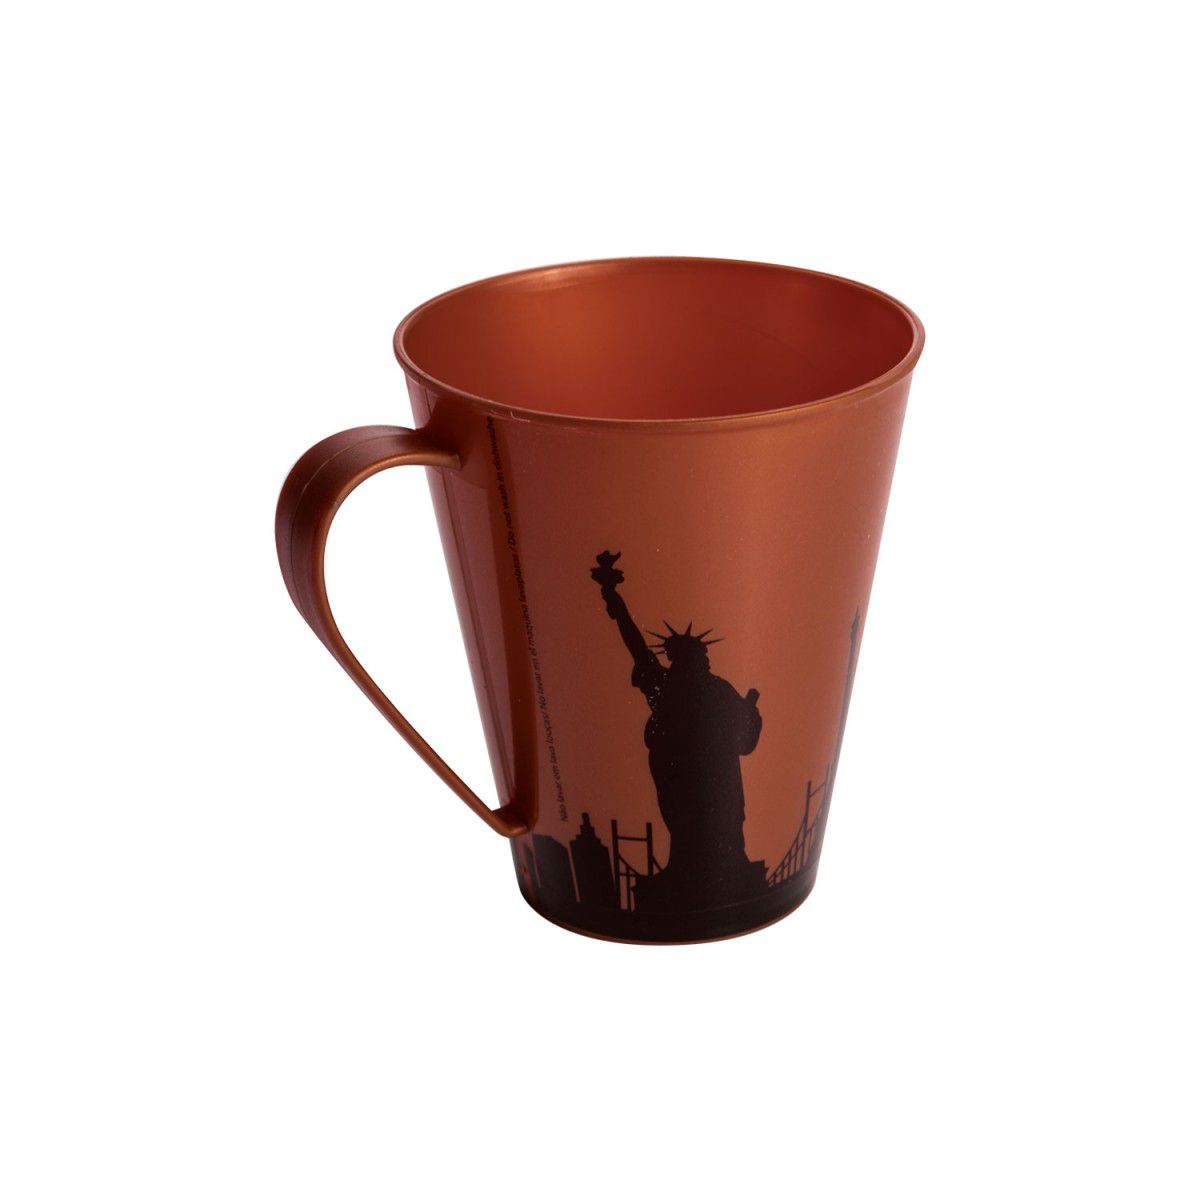 Caneca Plastica Decorada Cobre 360 ML Plasutil